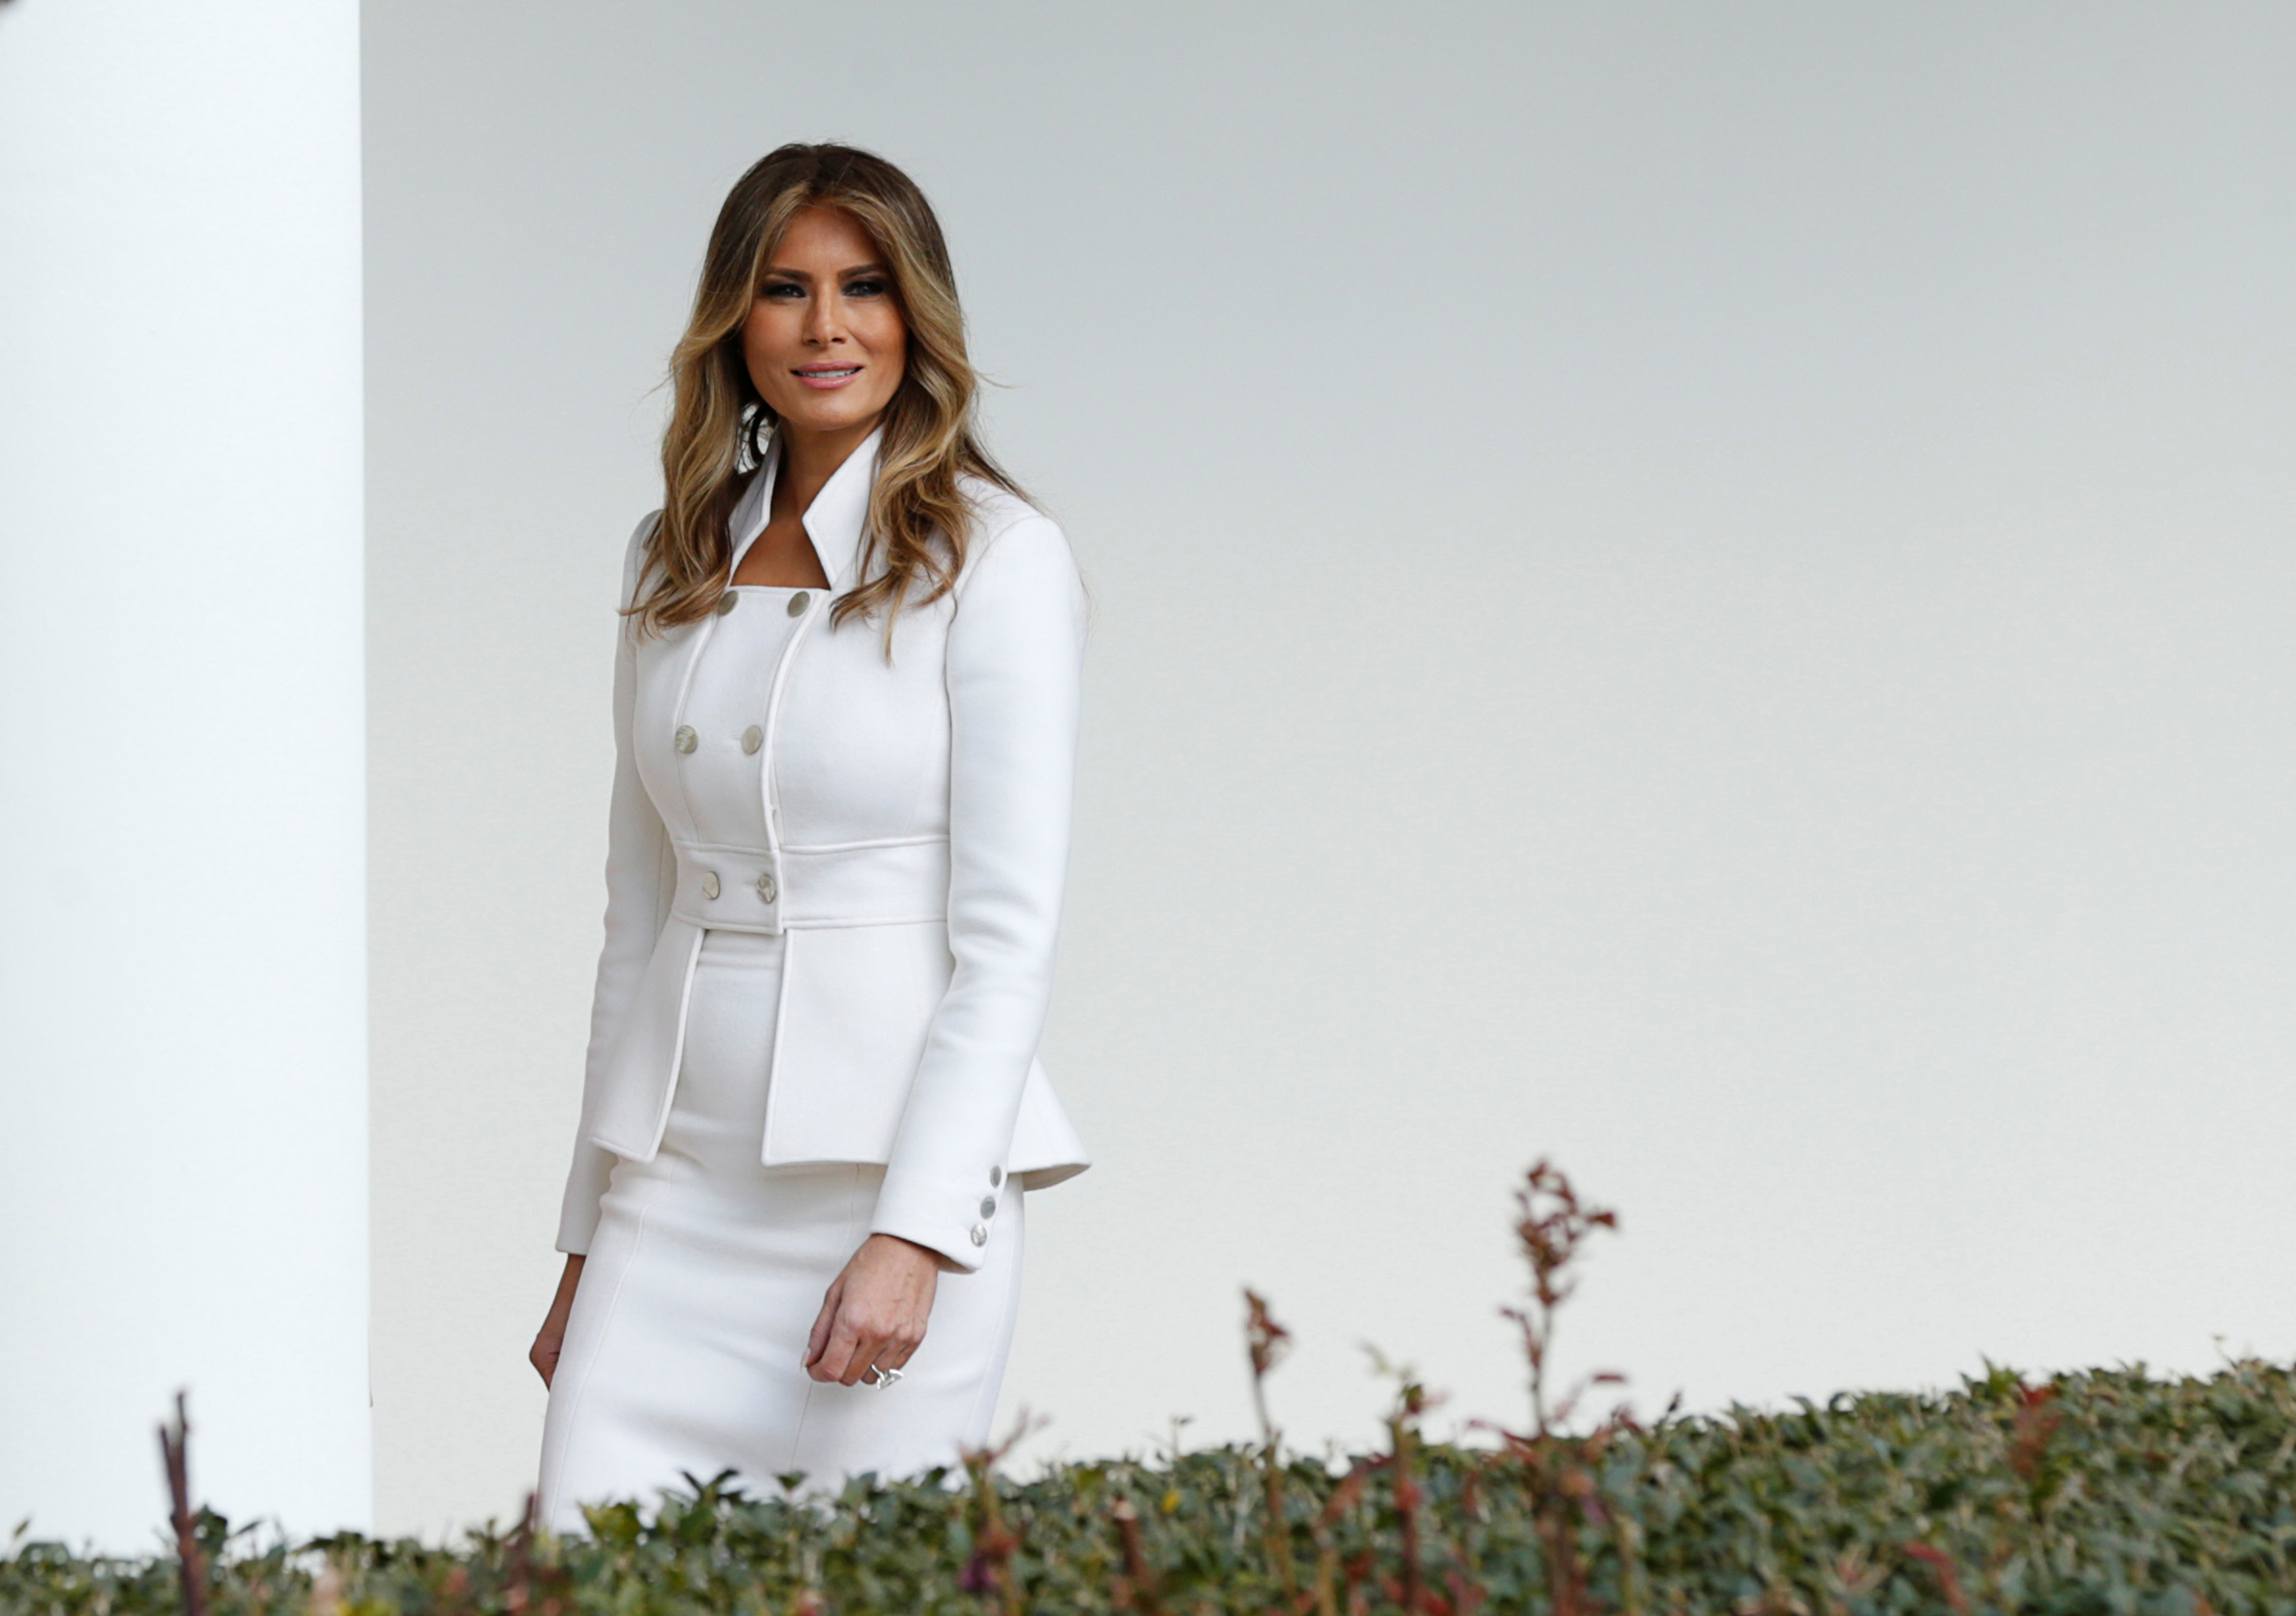 First lady Melania Trump wearing custom Karl Lagerfield outfit,  walks along the Colonnade at the White House, Feb. 15, 2017.